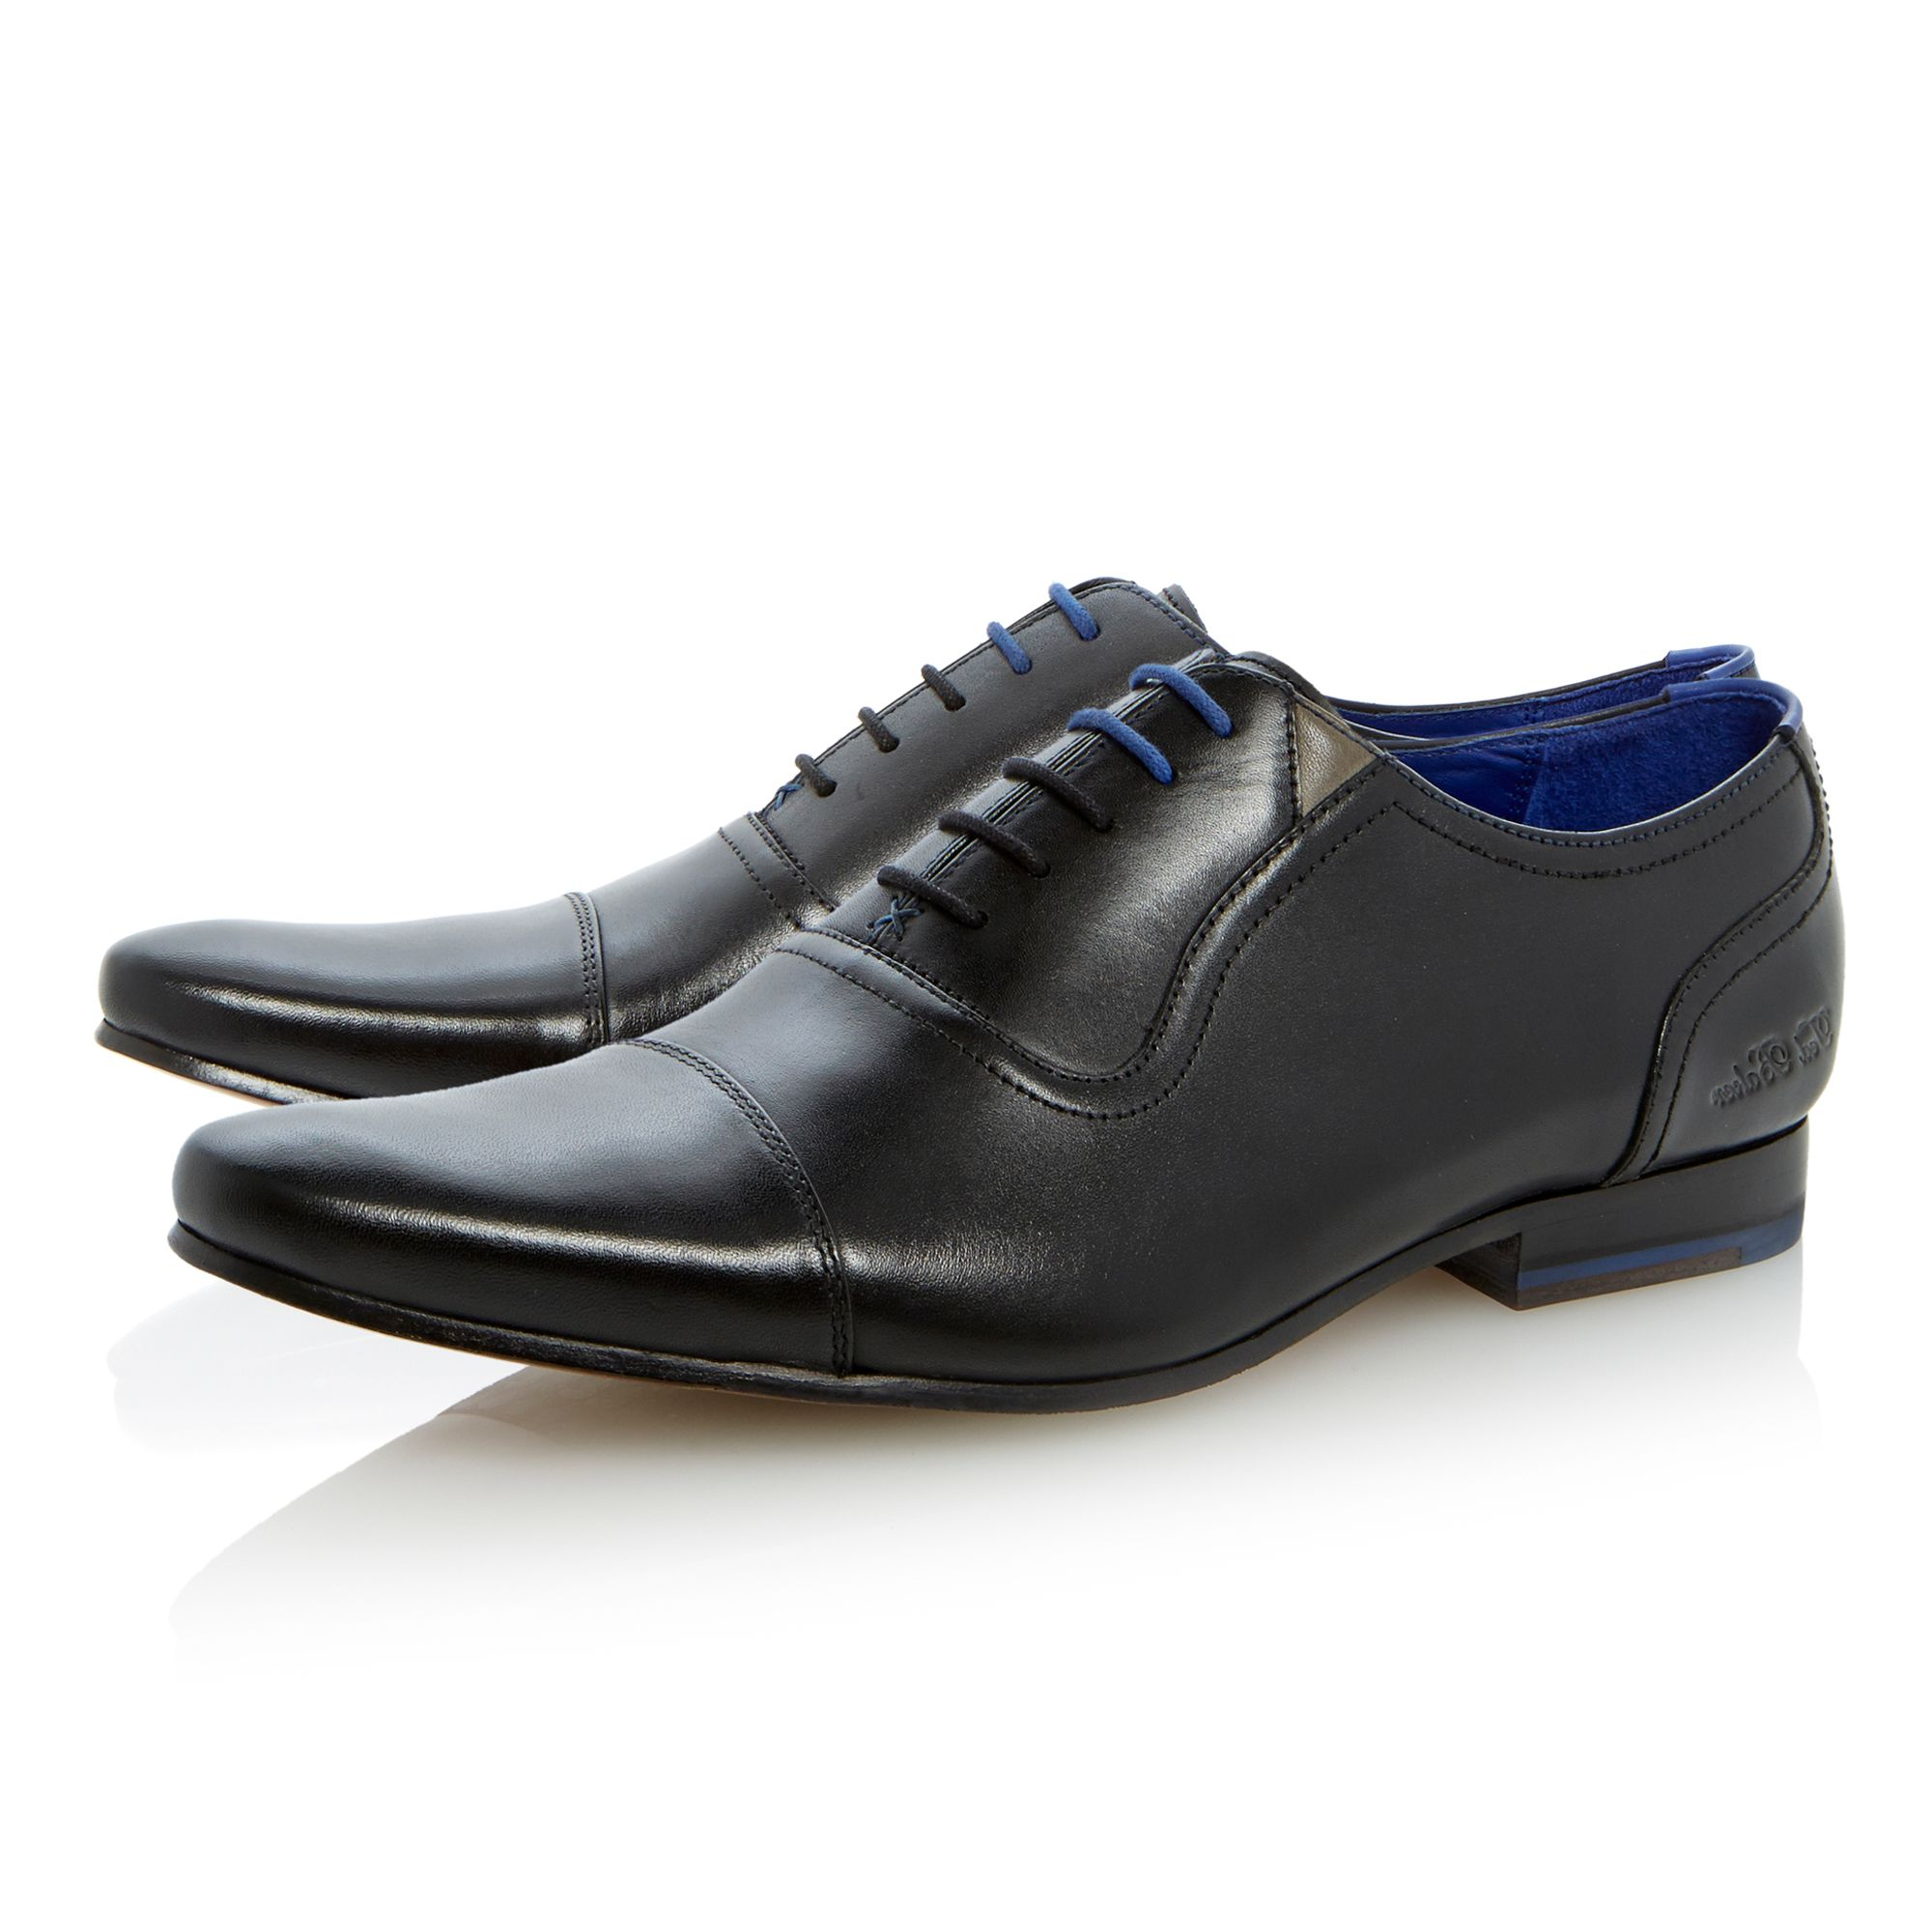 Rogrr lace up toe cap oxford shoes